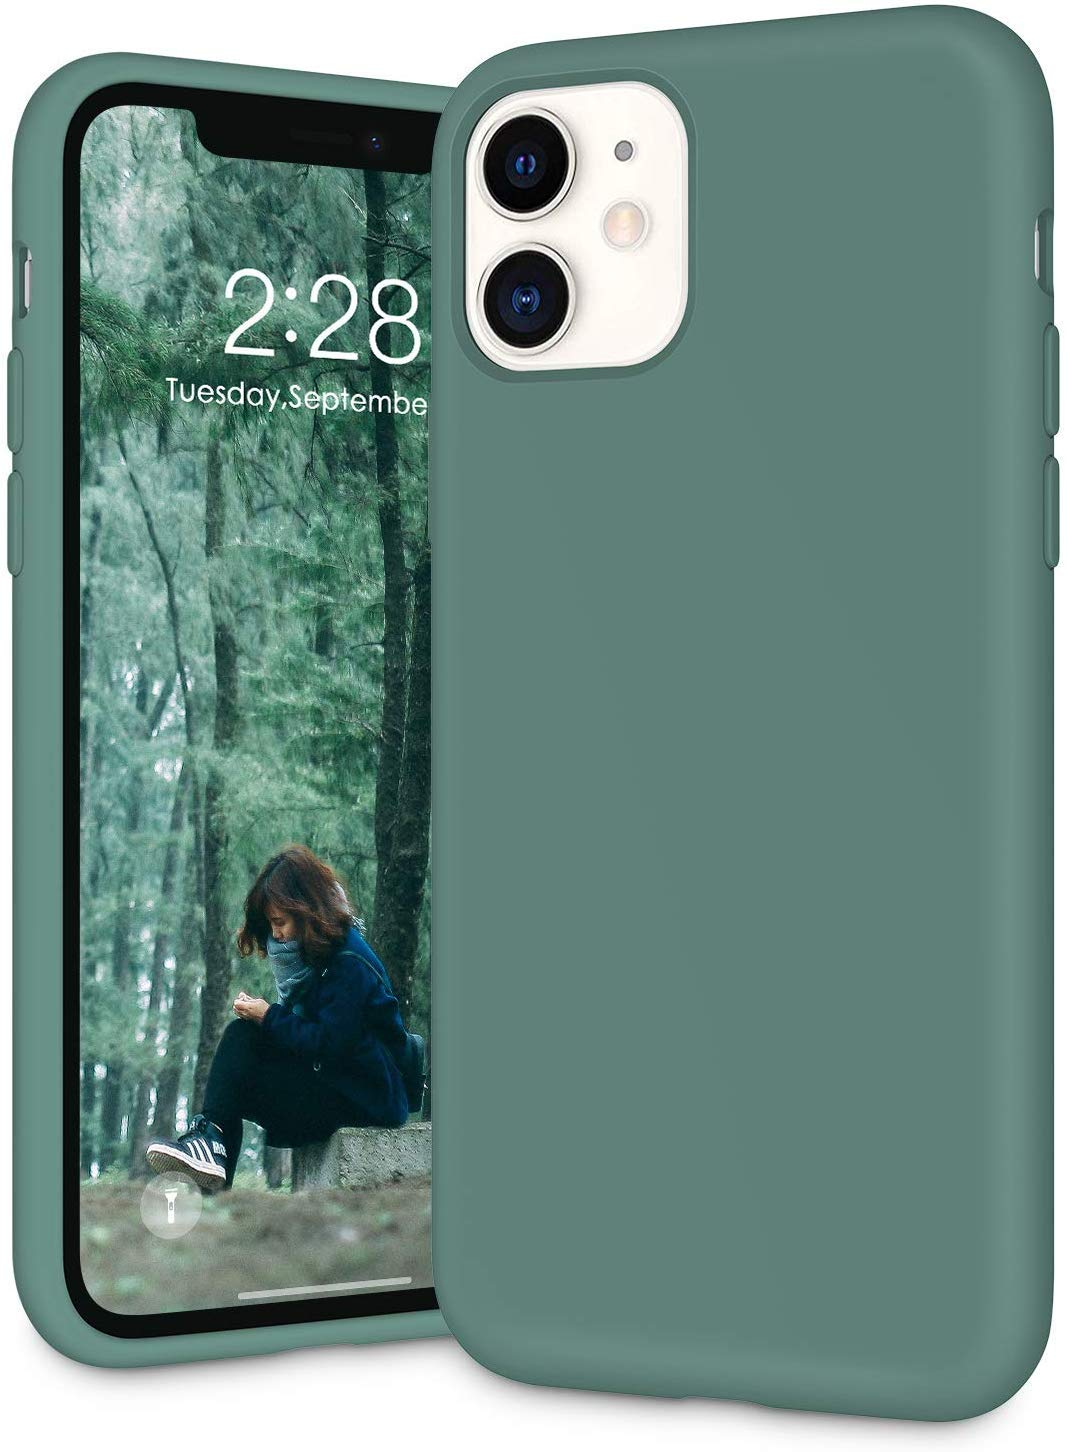 """IceSword iPhone 11 Case, Pine Green iPhone 11 Silicone Case, Gel Rubber Full Body, iPhone 11 Cute iPhone 11 case, Soft Microfiber Cloth, 6.1"""" iPhone 11 case Silicone, iPhone 11 case Cute - Pine Green"""